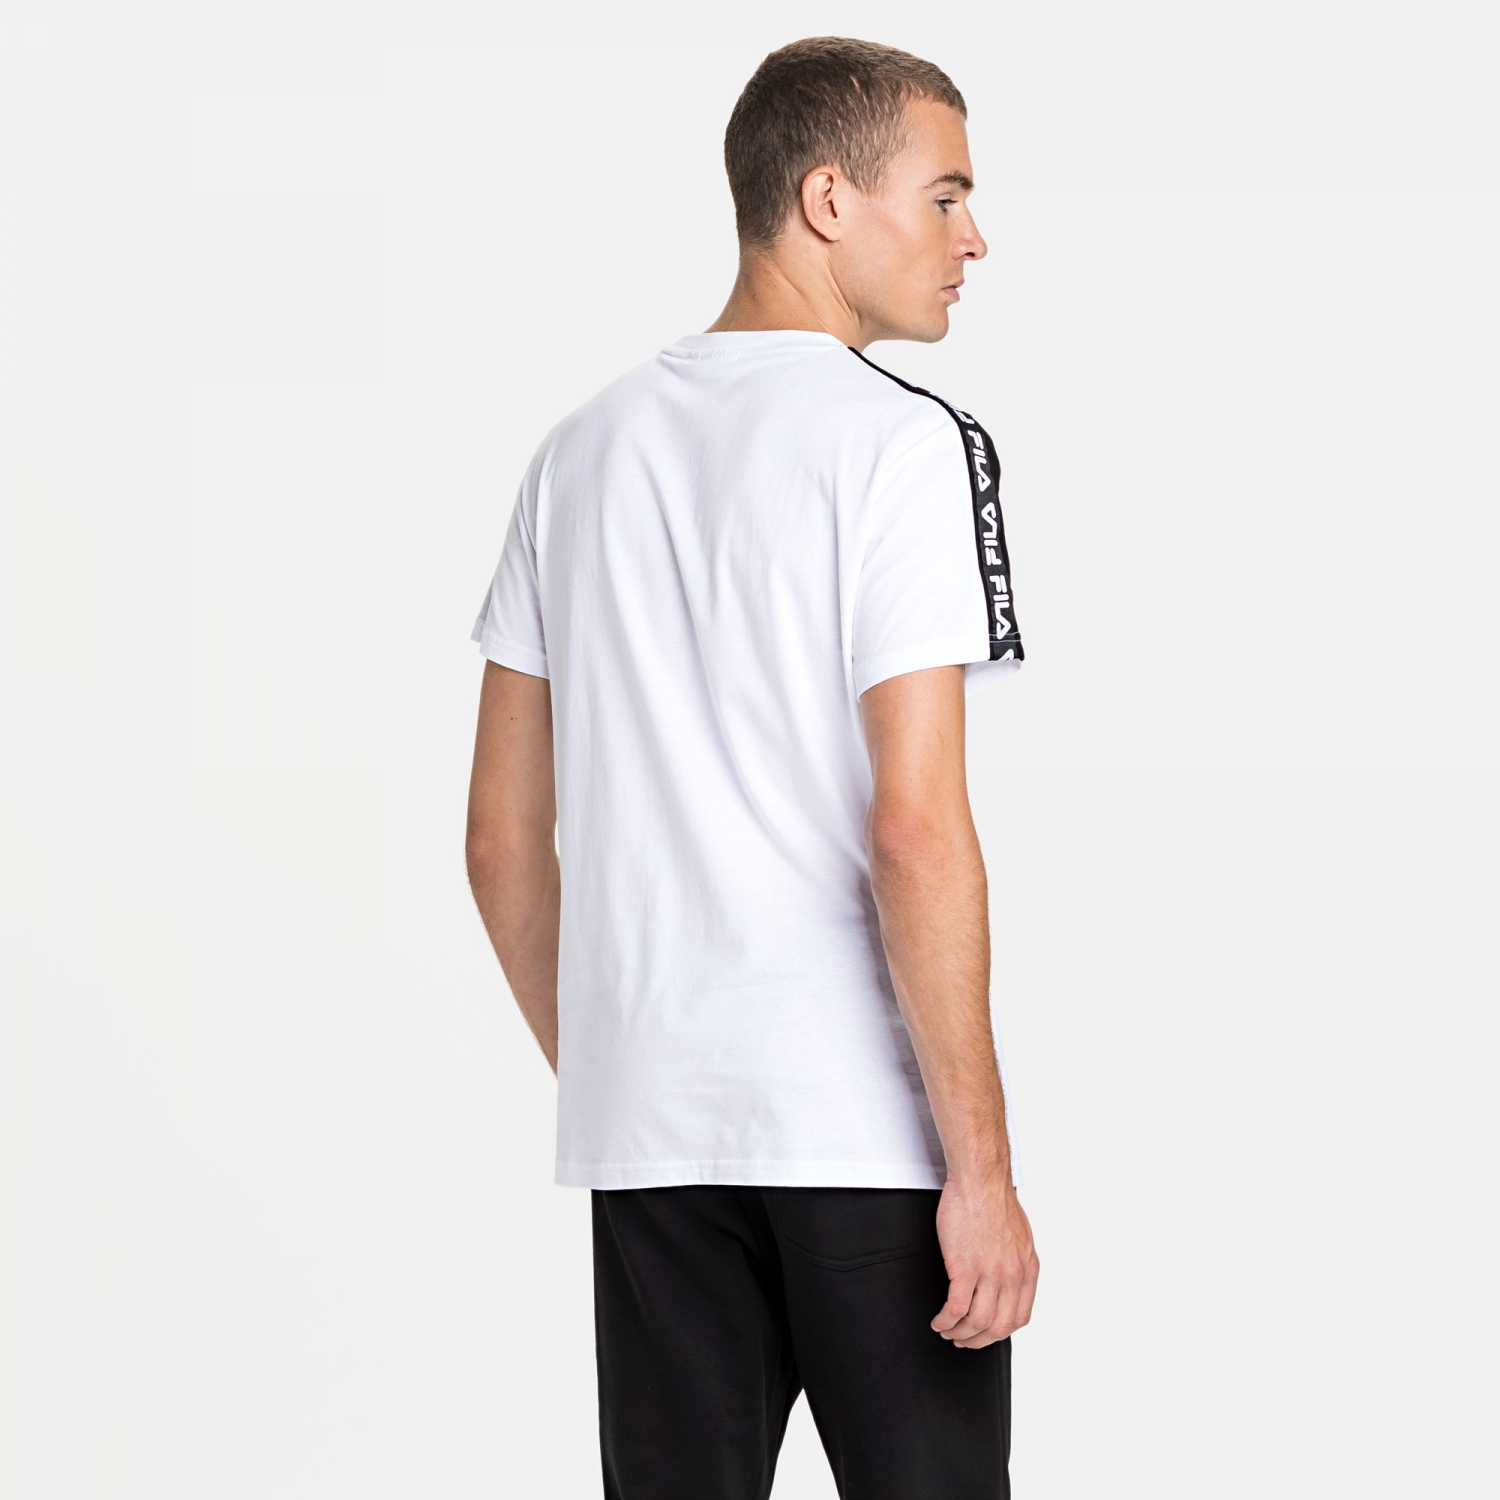 Fila Thanos Tee white-black Bild 2